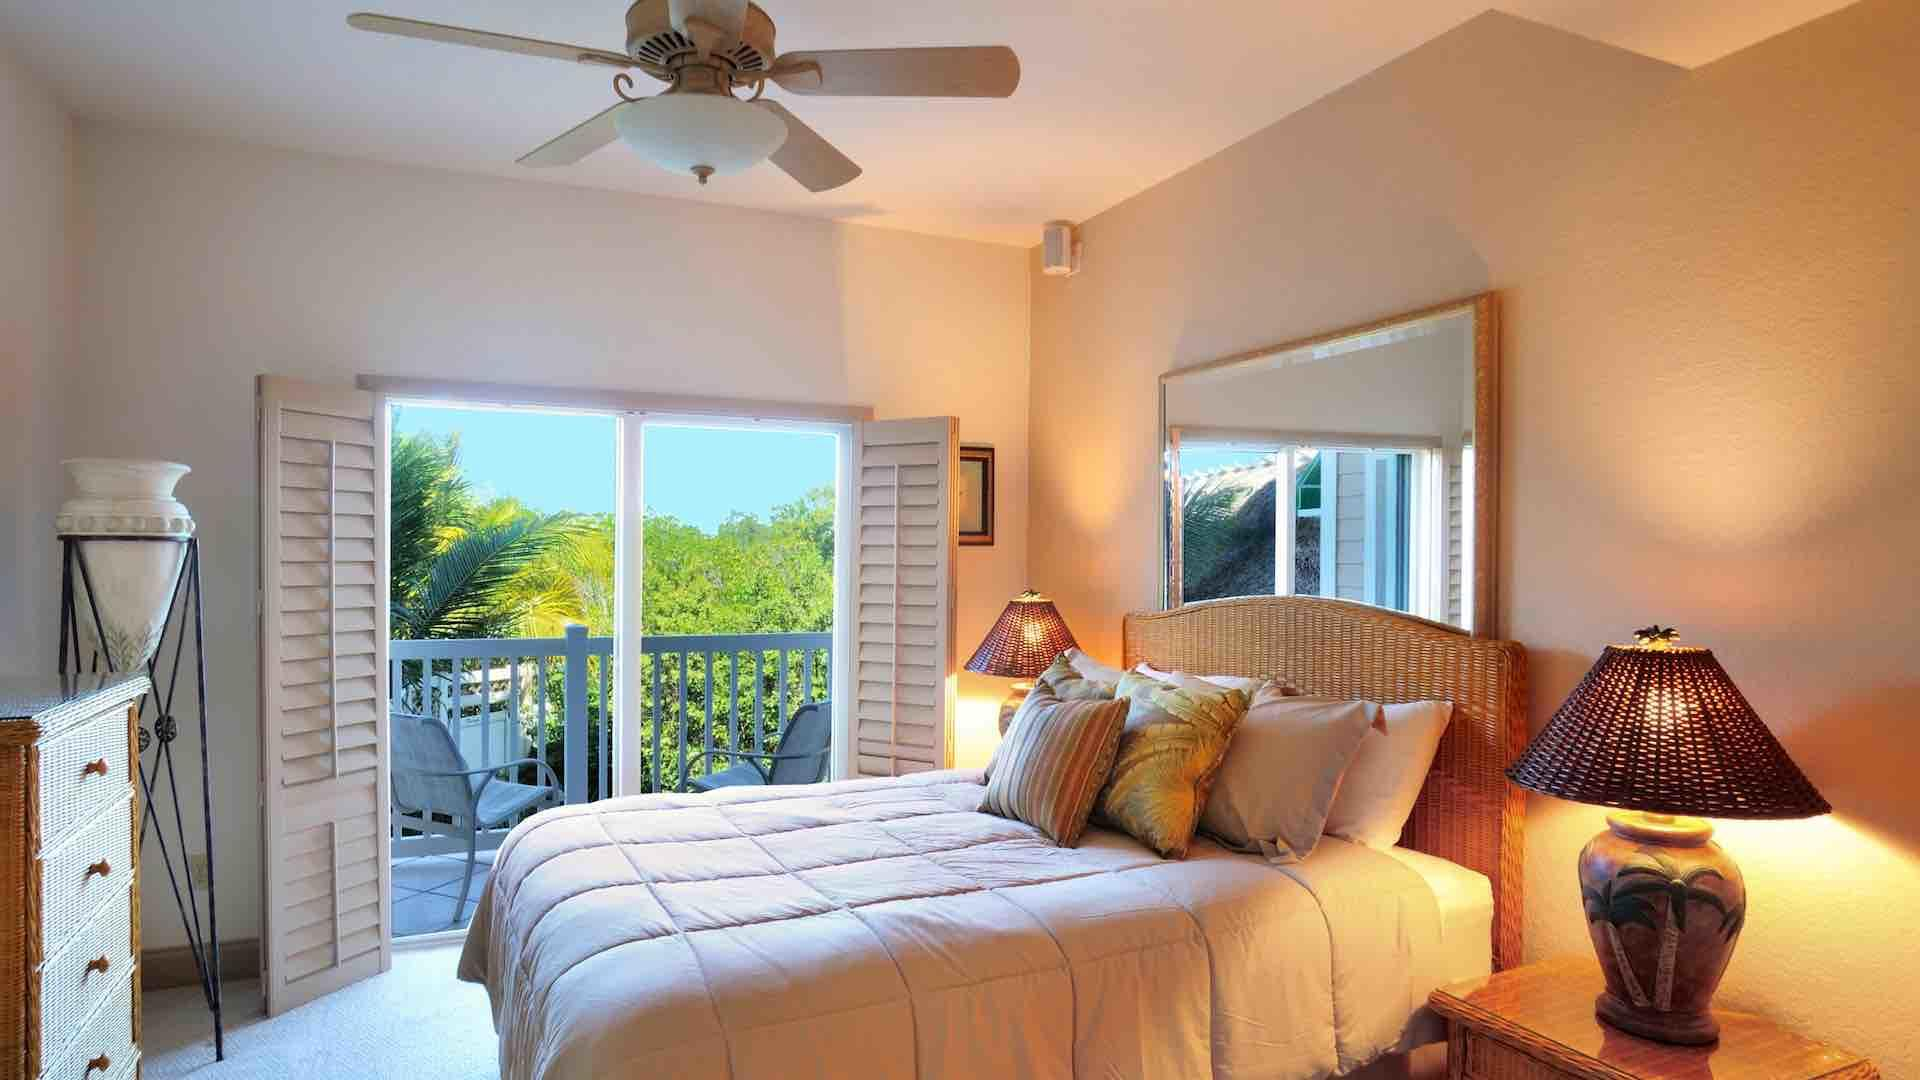 The third bedroom has a Queen bed and a private balcony...